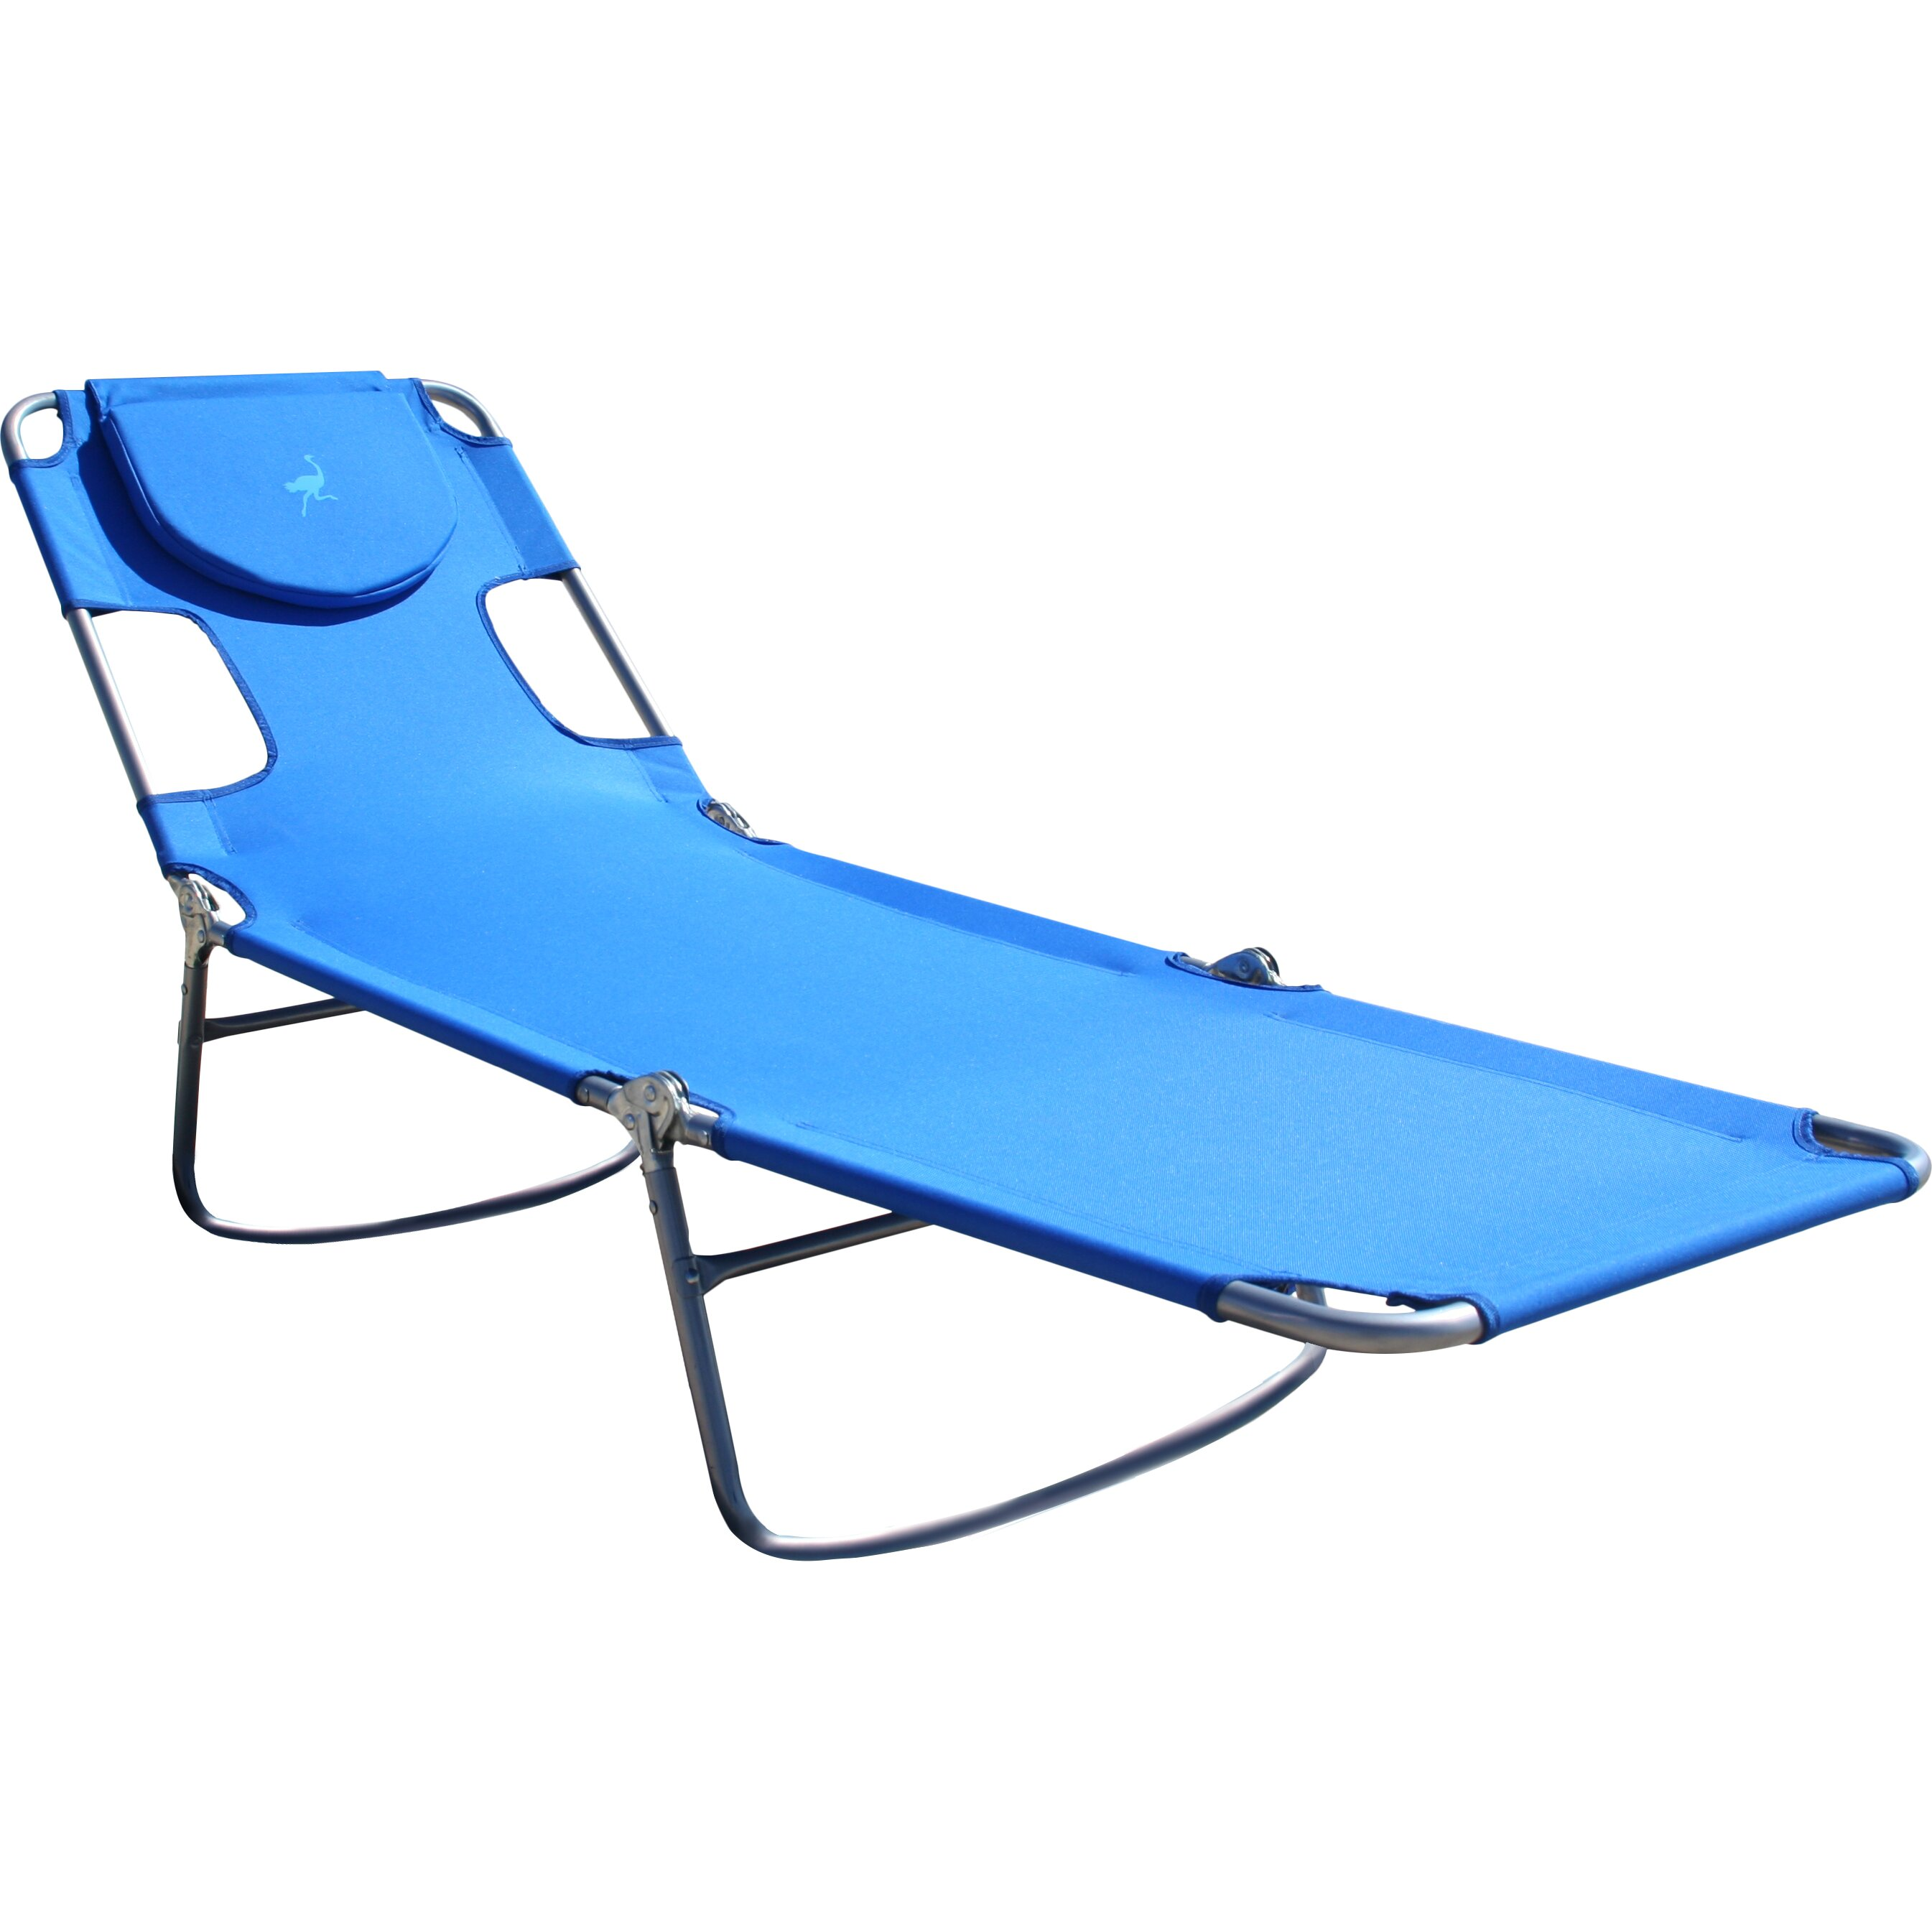 Ostrich Chair Folding Chaise Lounge & Reviews